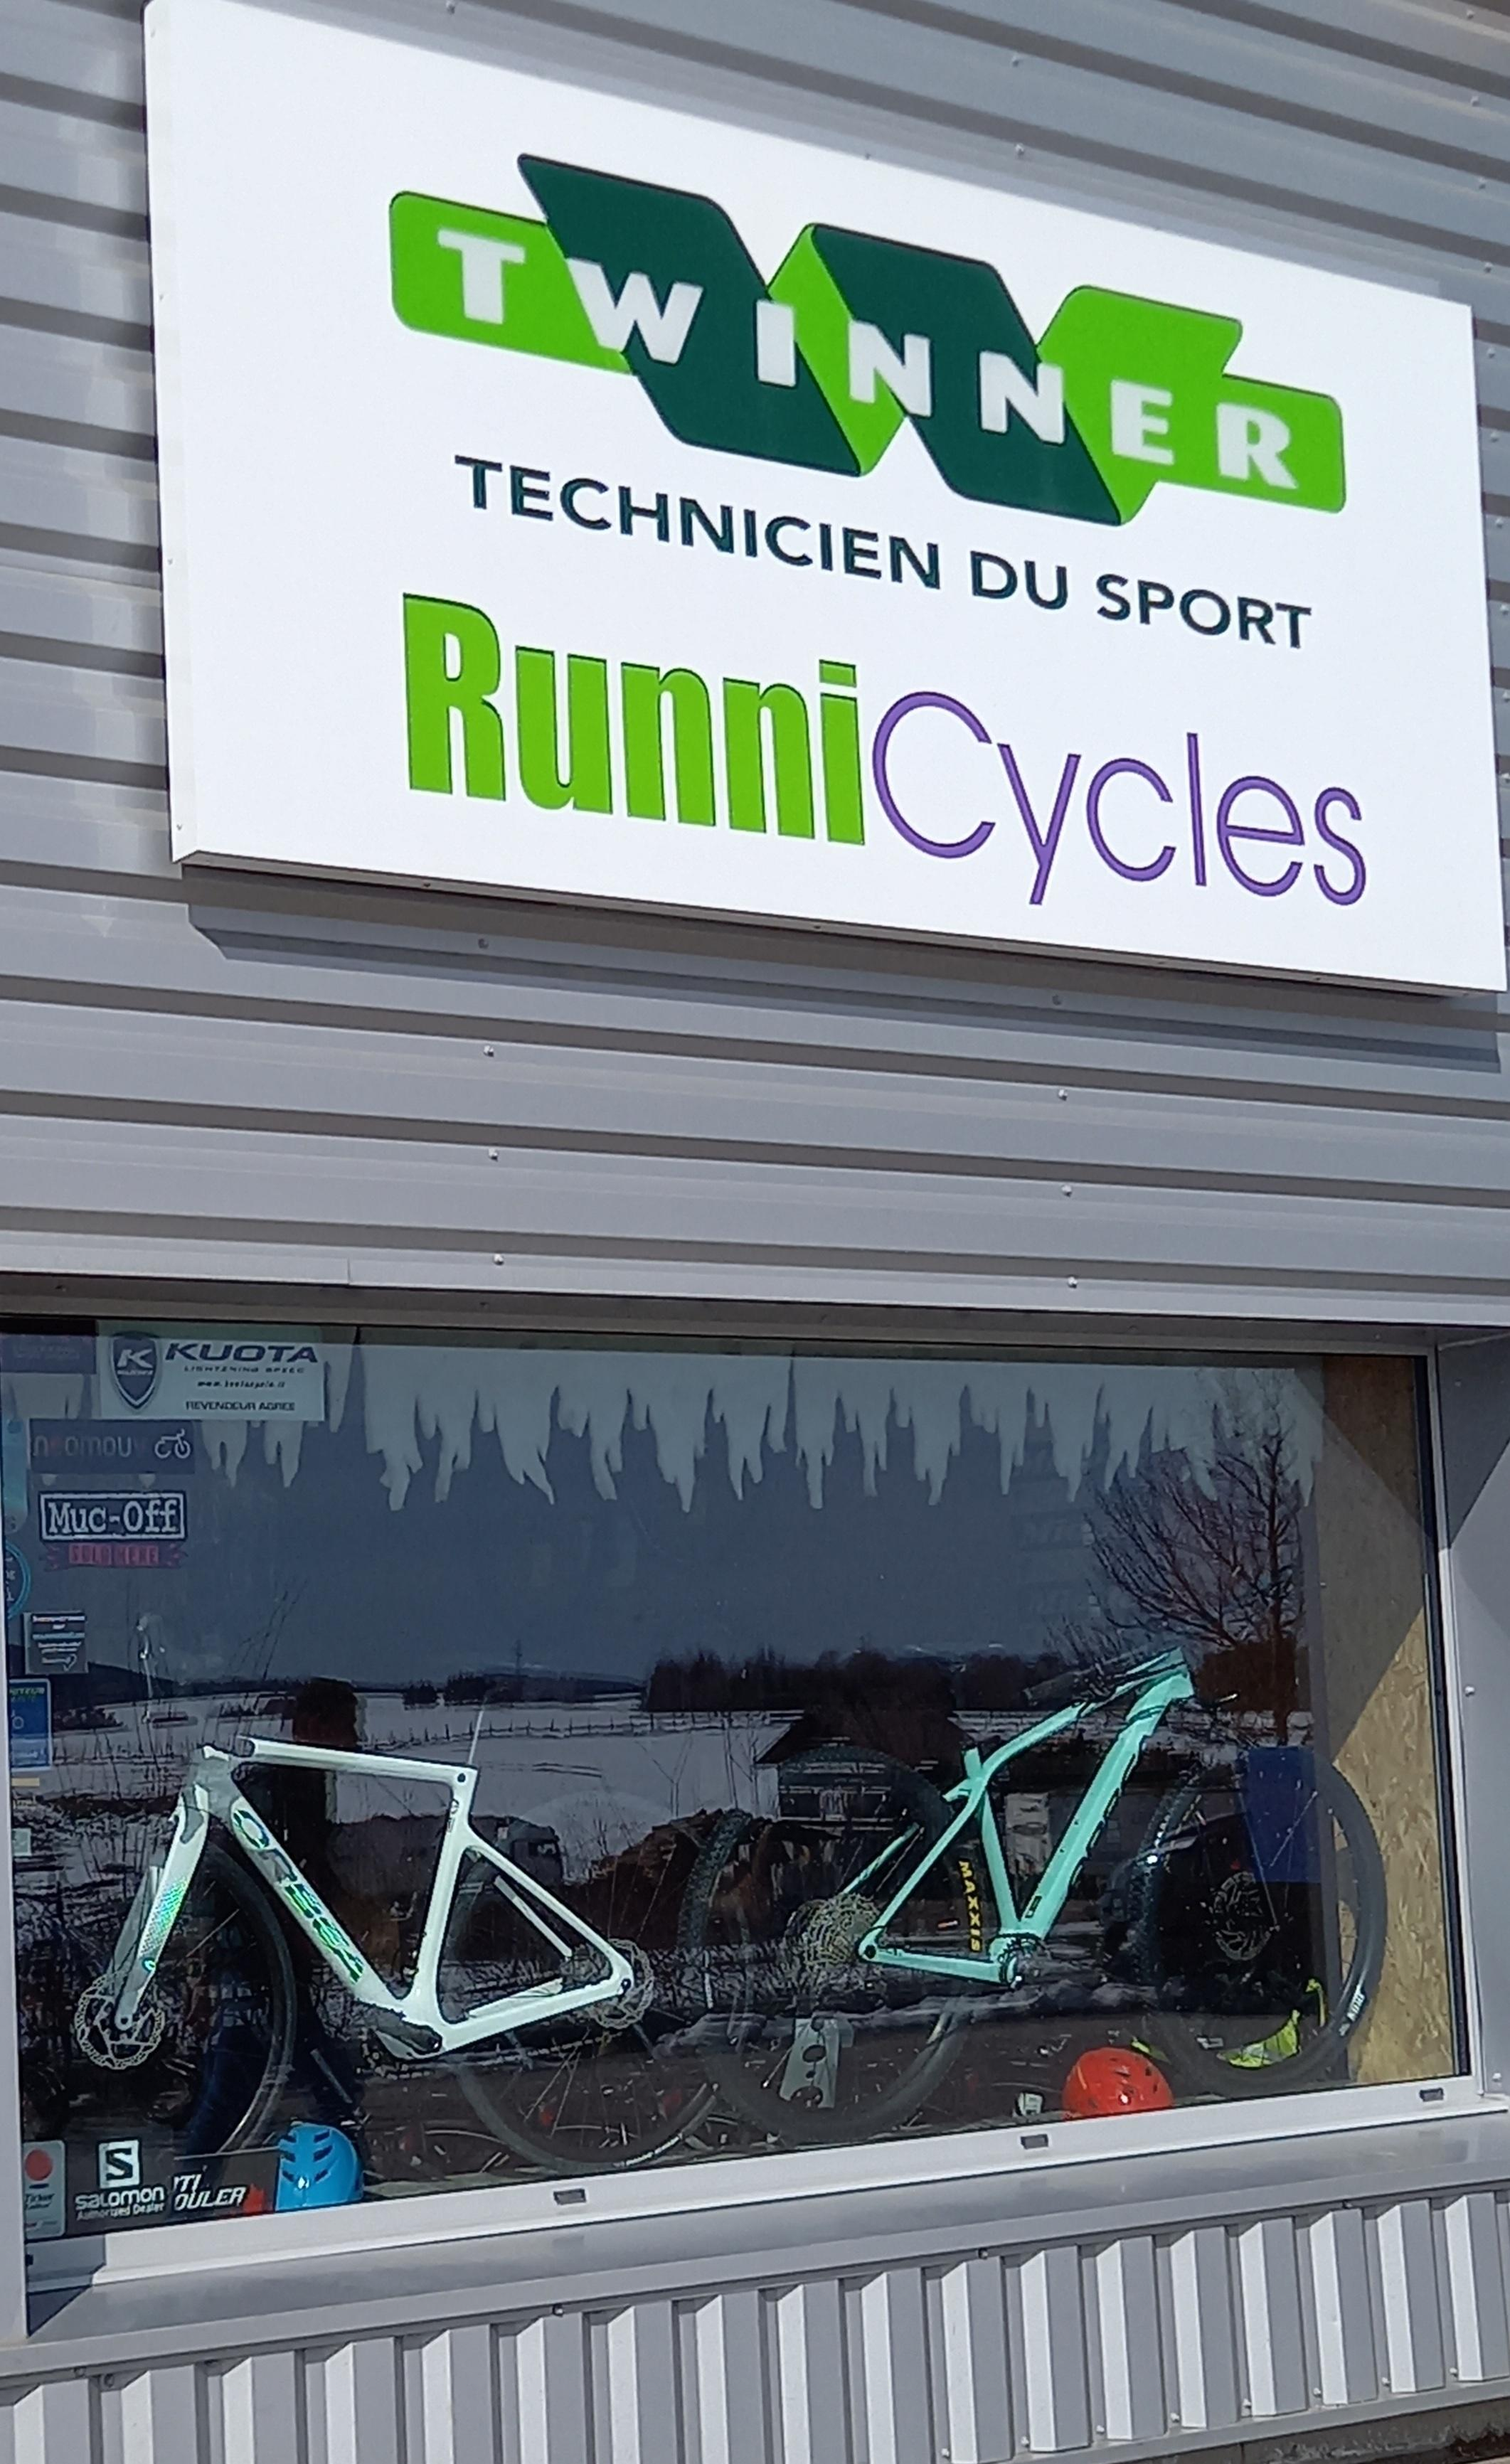 RUNNICYCLES1  Ⓒ  JOLY Jean François